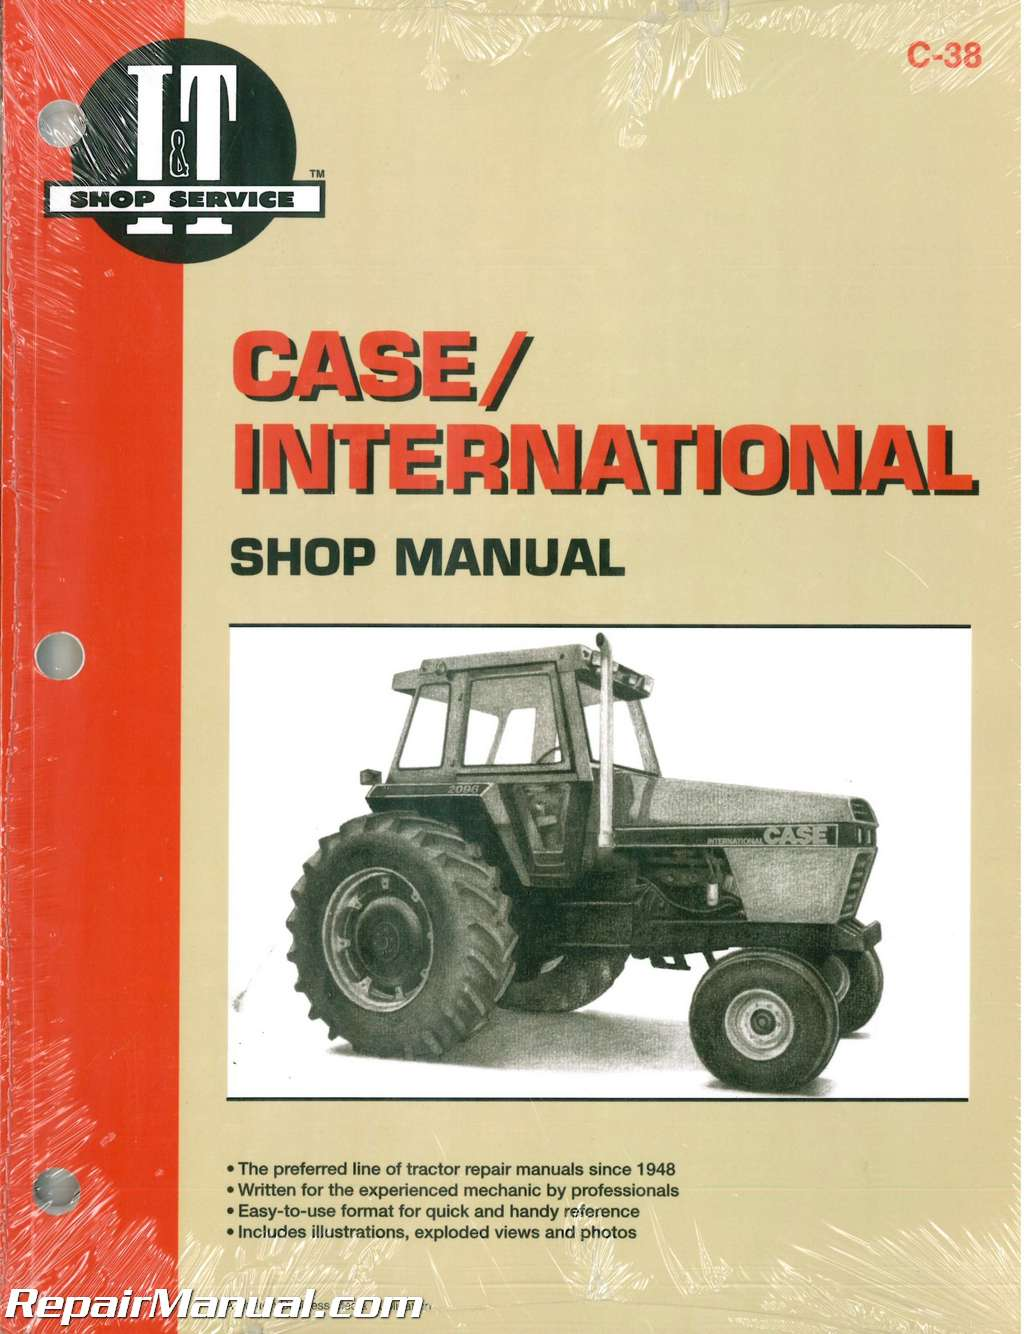 case international 1896 and 2096 tractor workshop manual rh repairmanual com tractor repair manuals pdf tractor repair manuals tl100a pdf